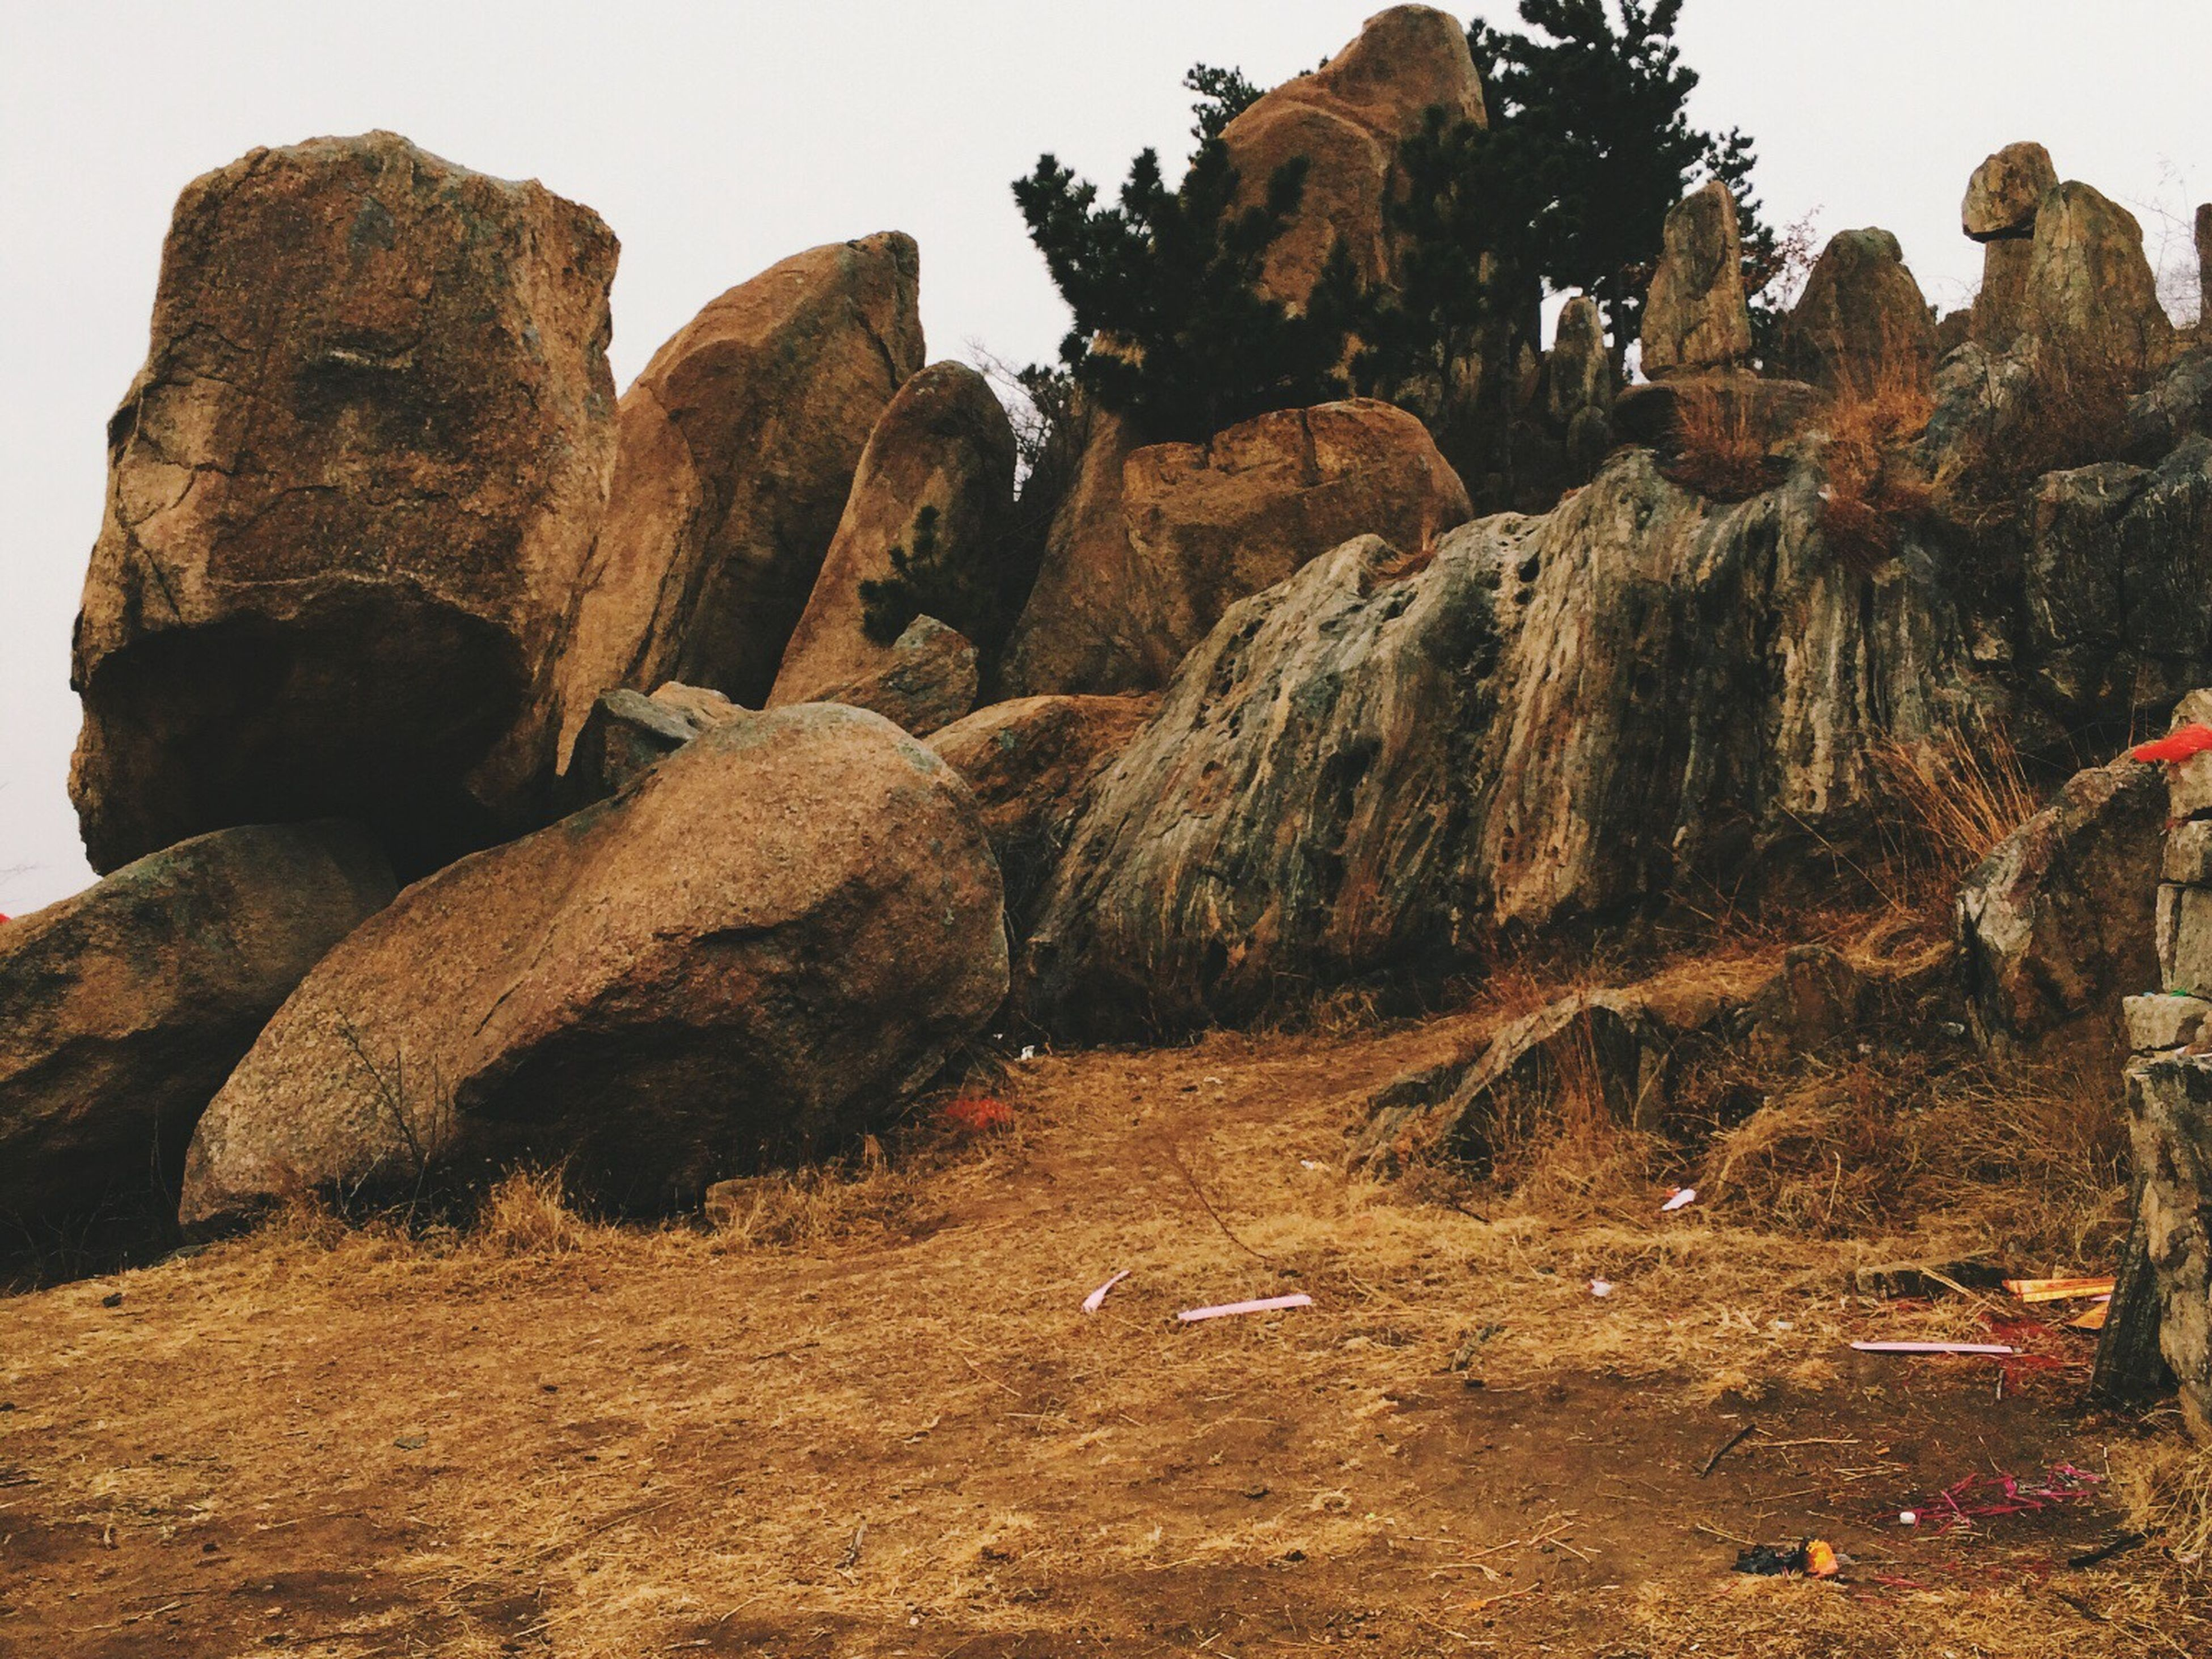 rock formation, rock - object, tranquility, nature, clear sky, sky, tranquil scene, landscape, low angle view, rock, geology, non-urban scene, tree, scenics, arid climate, eroded, cliff, desert, beauty in nature, day